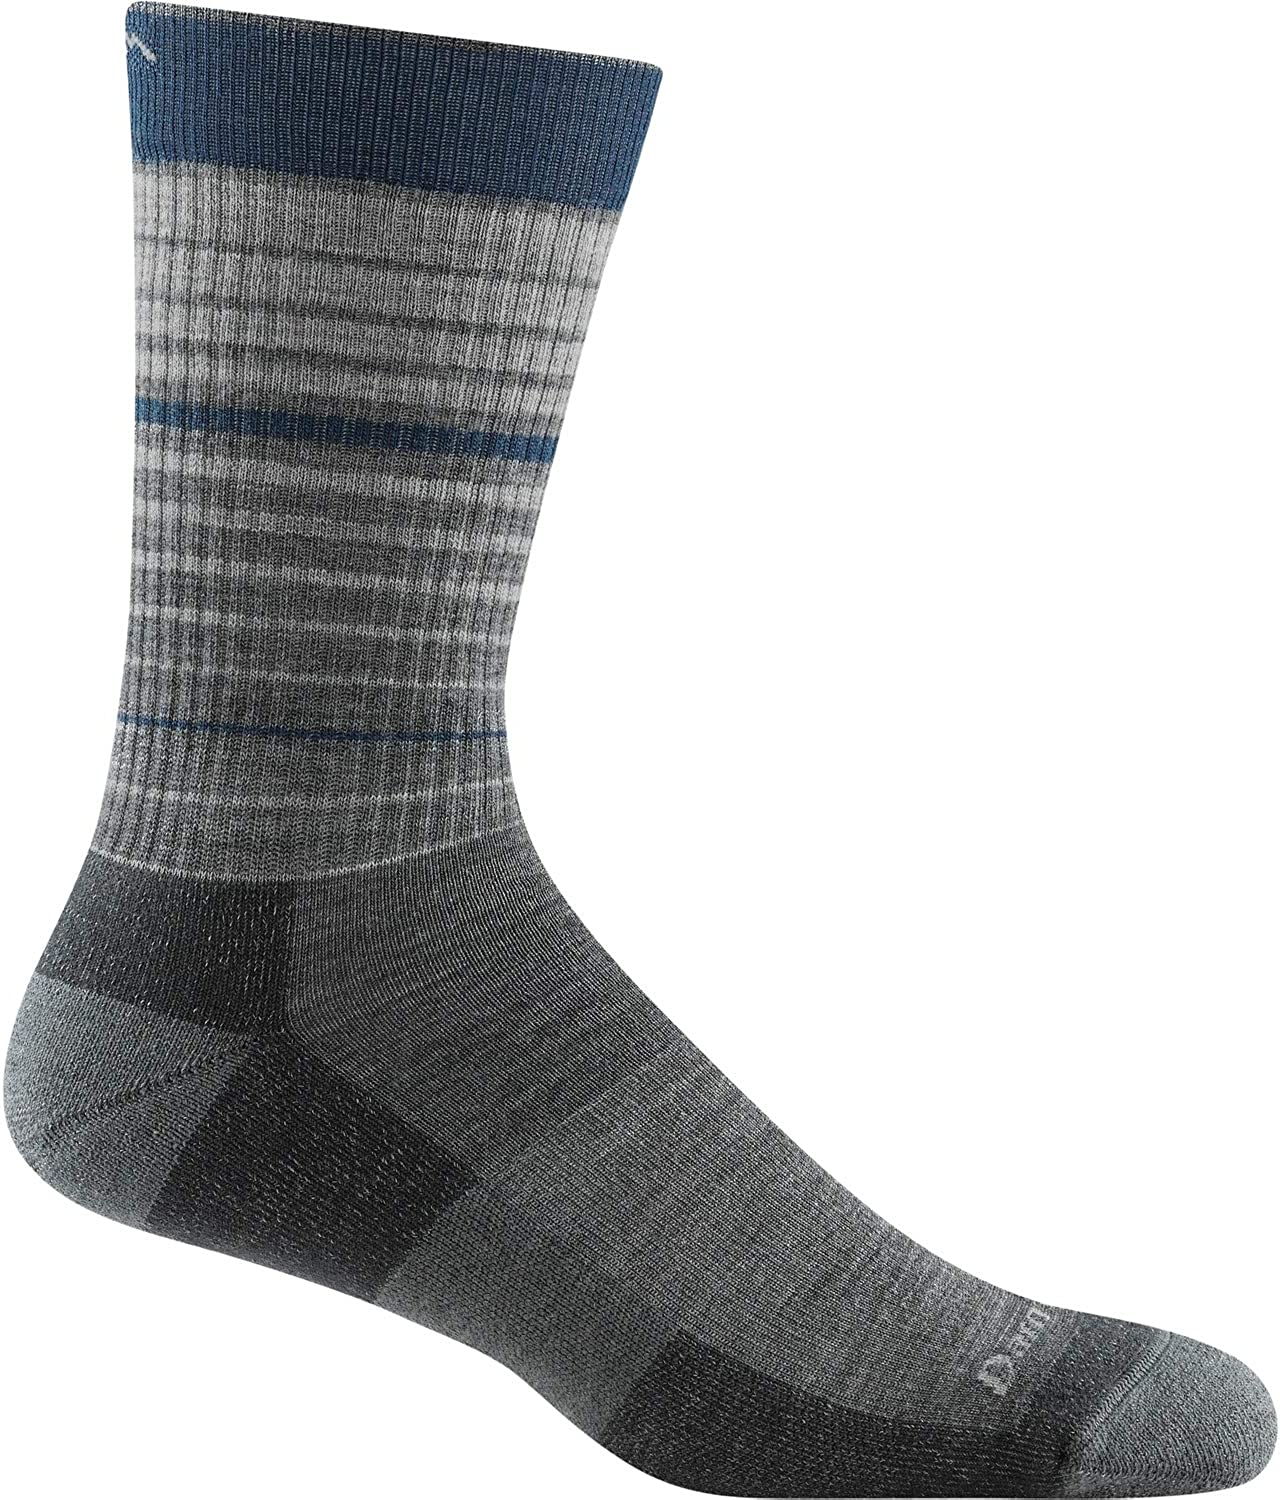 Darn Tough Frequency Crew Lightweight Sock with Cushion - Men's